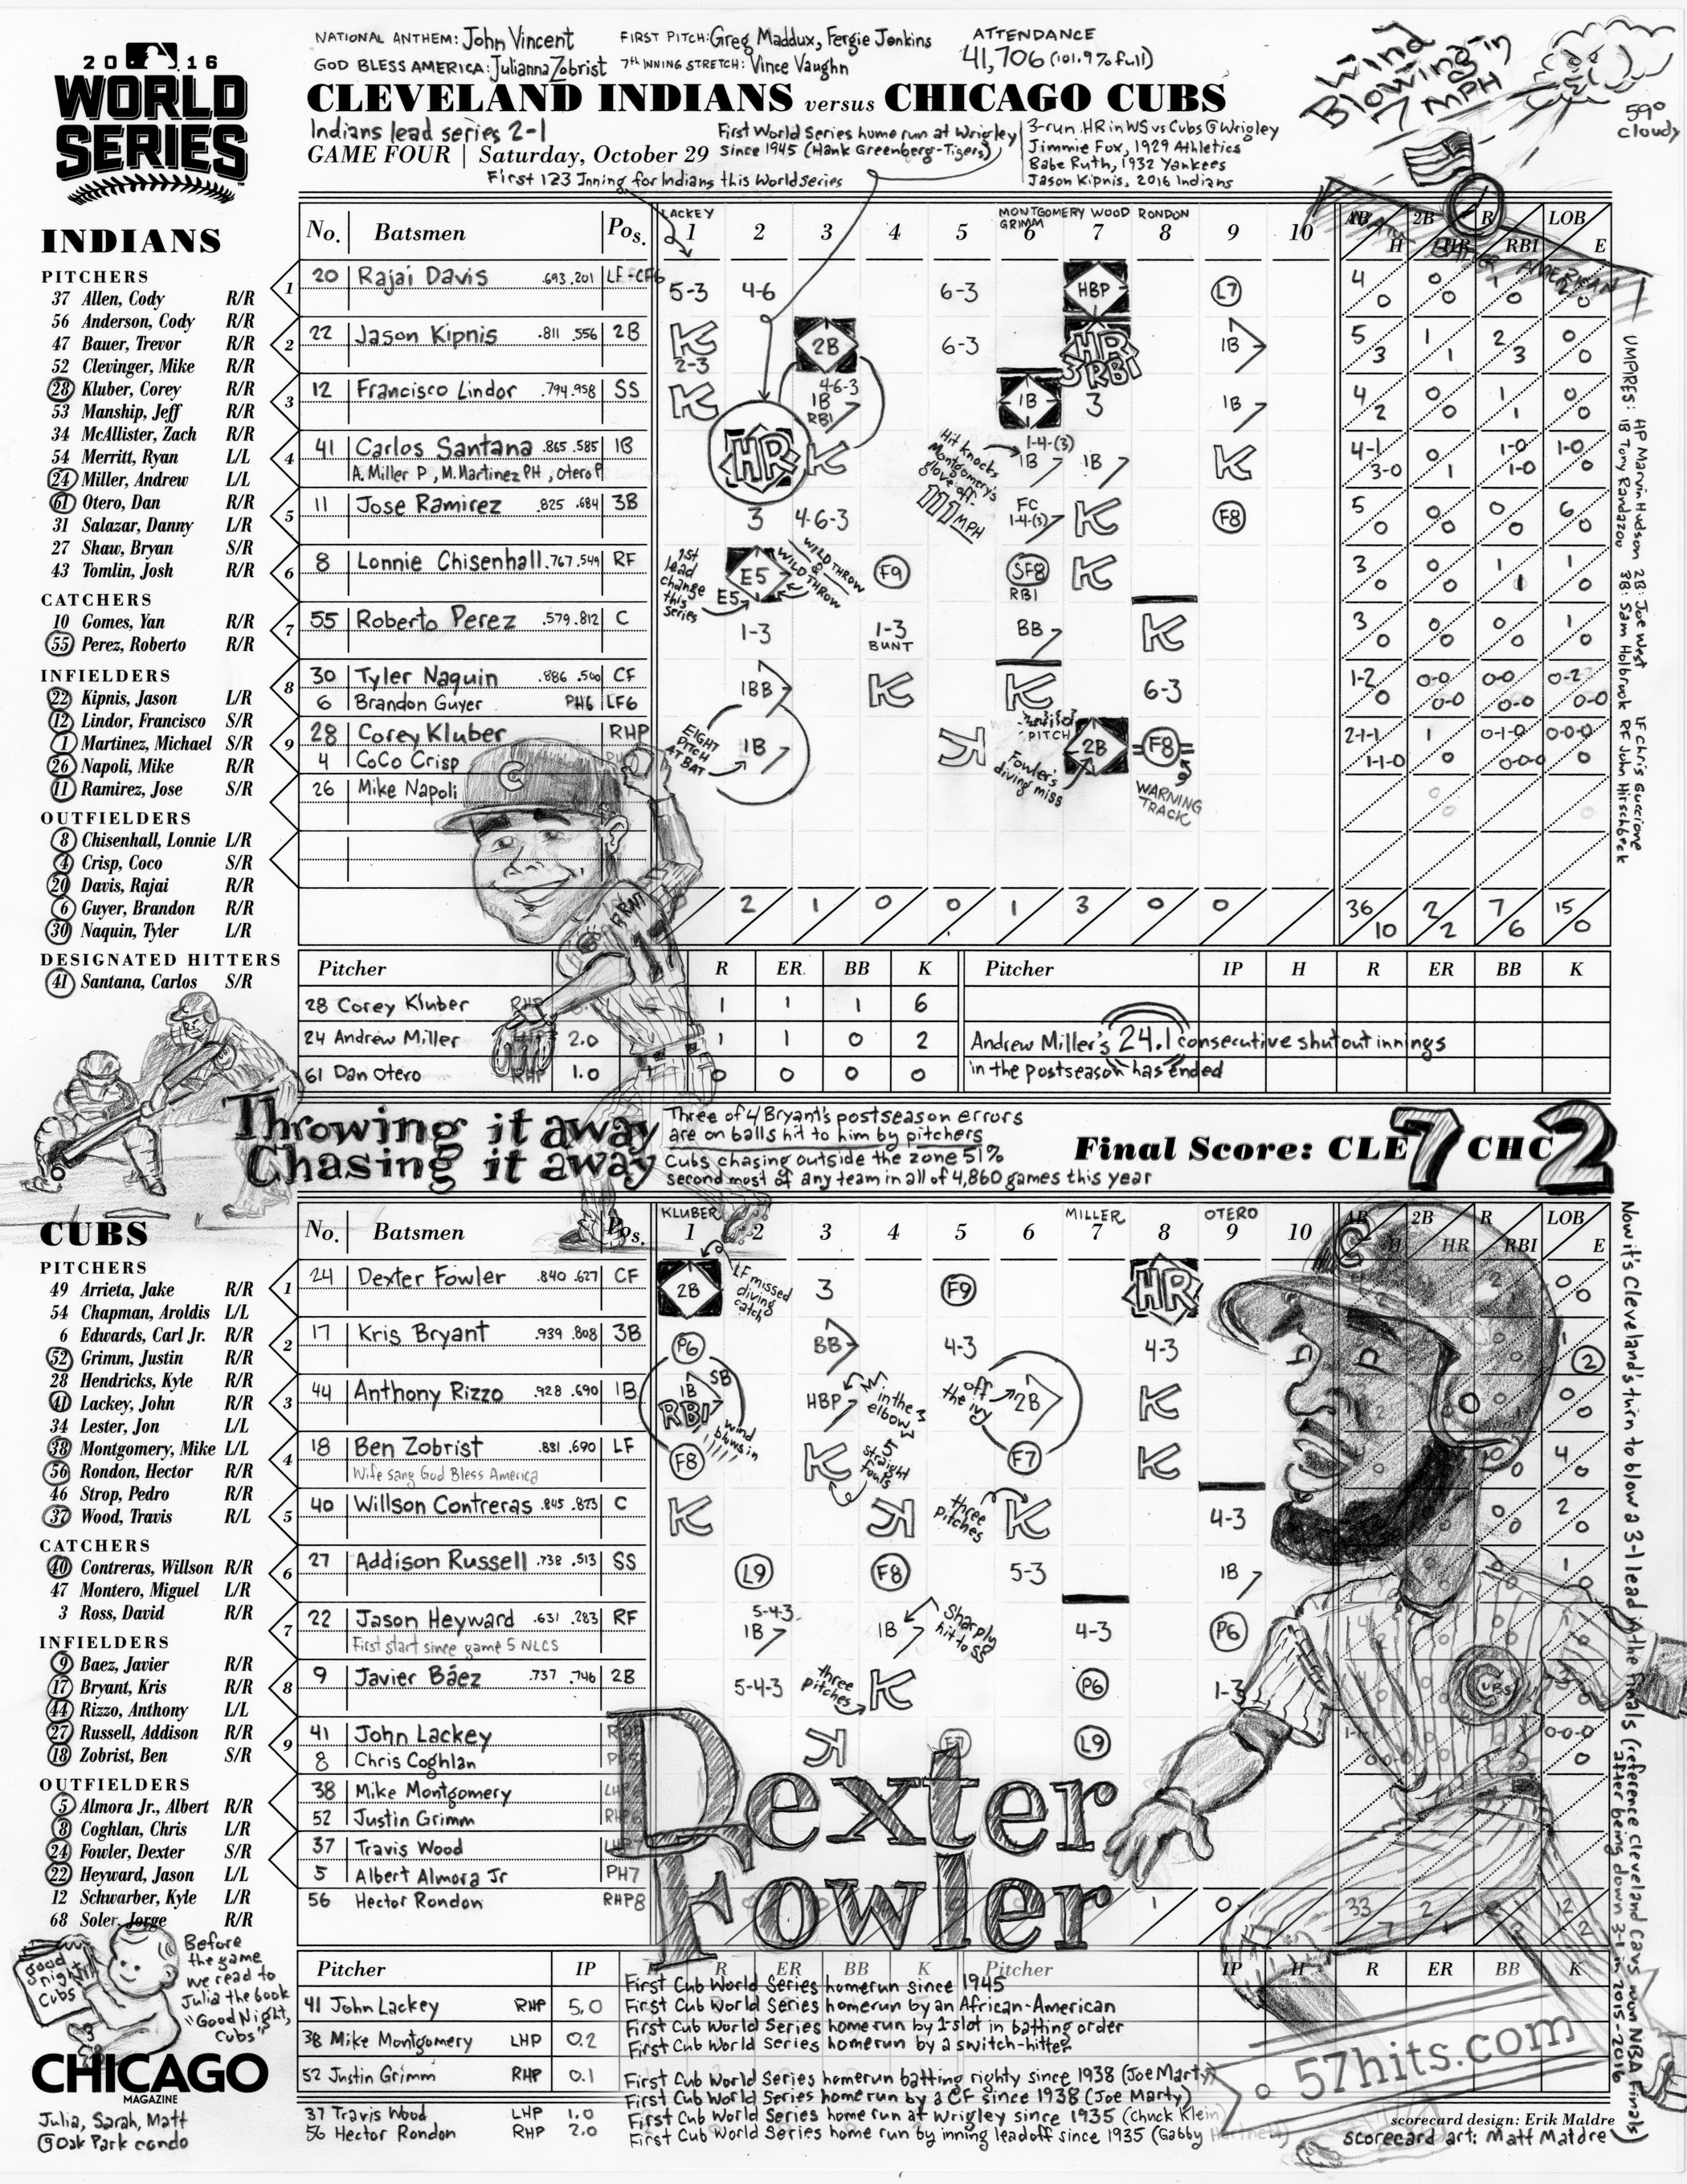 Game 4 scorecard for 2016 World Series by Matt Maldre